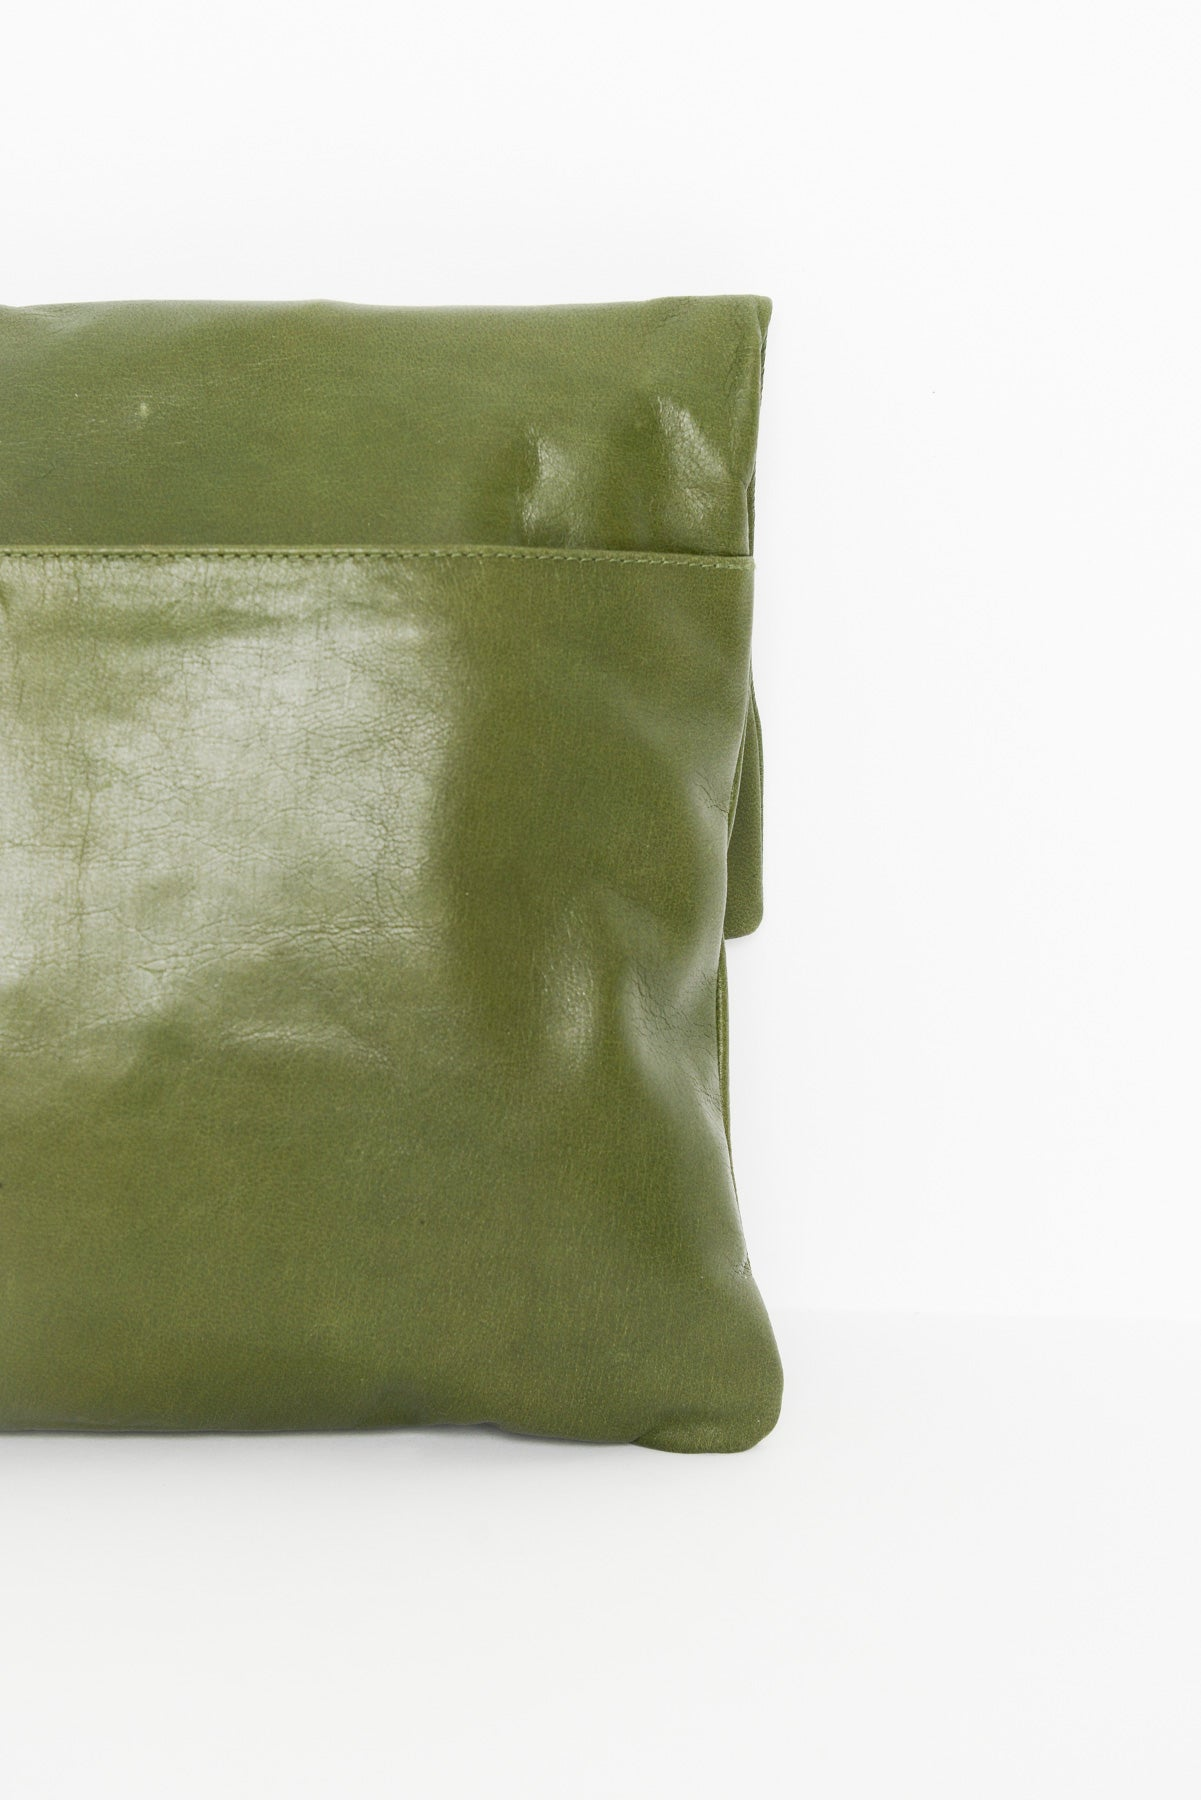 Bambi Olive Foldover Leather Clutch - Blue Bungalow